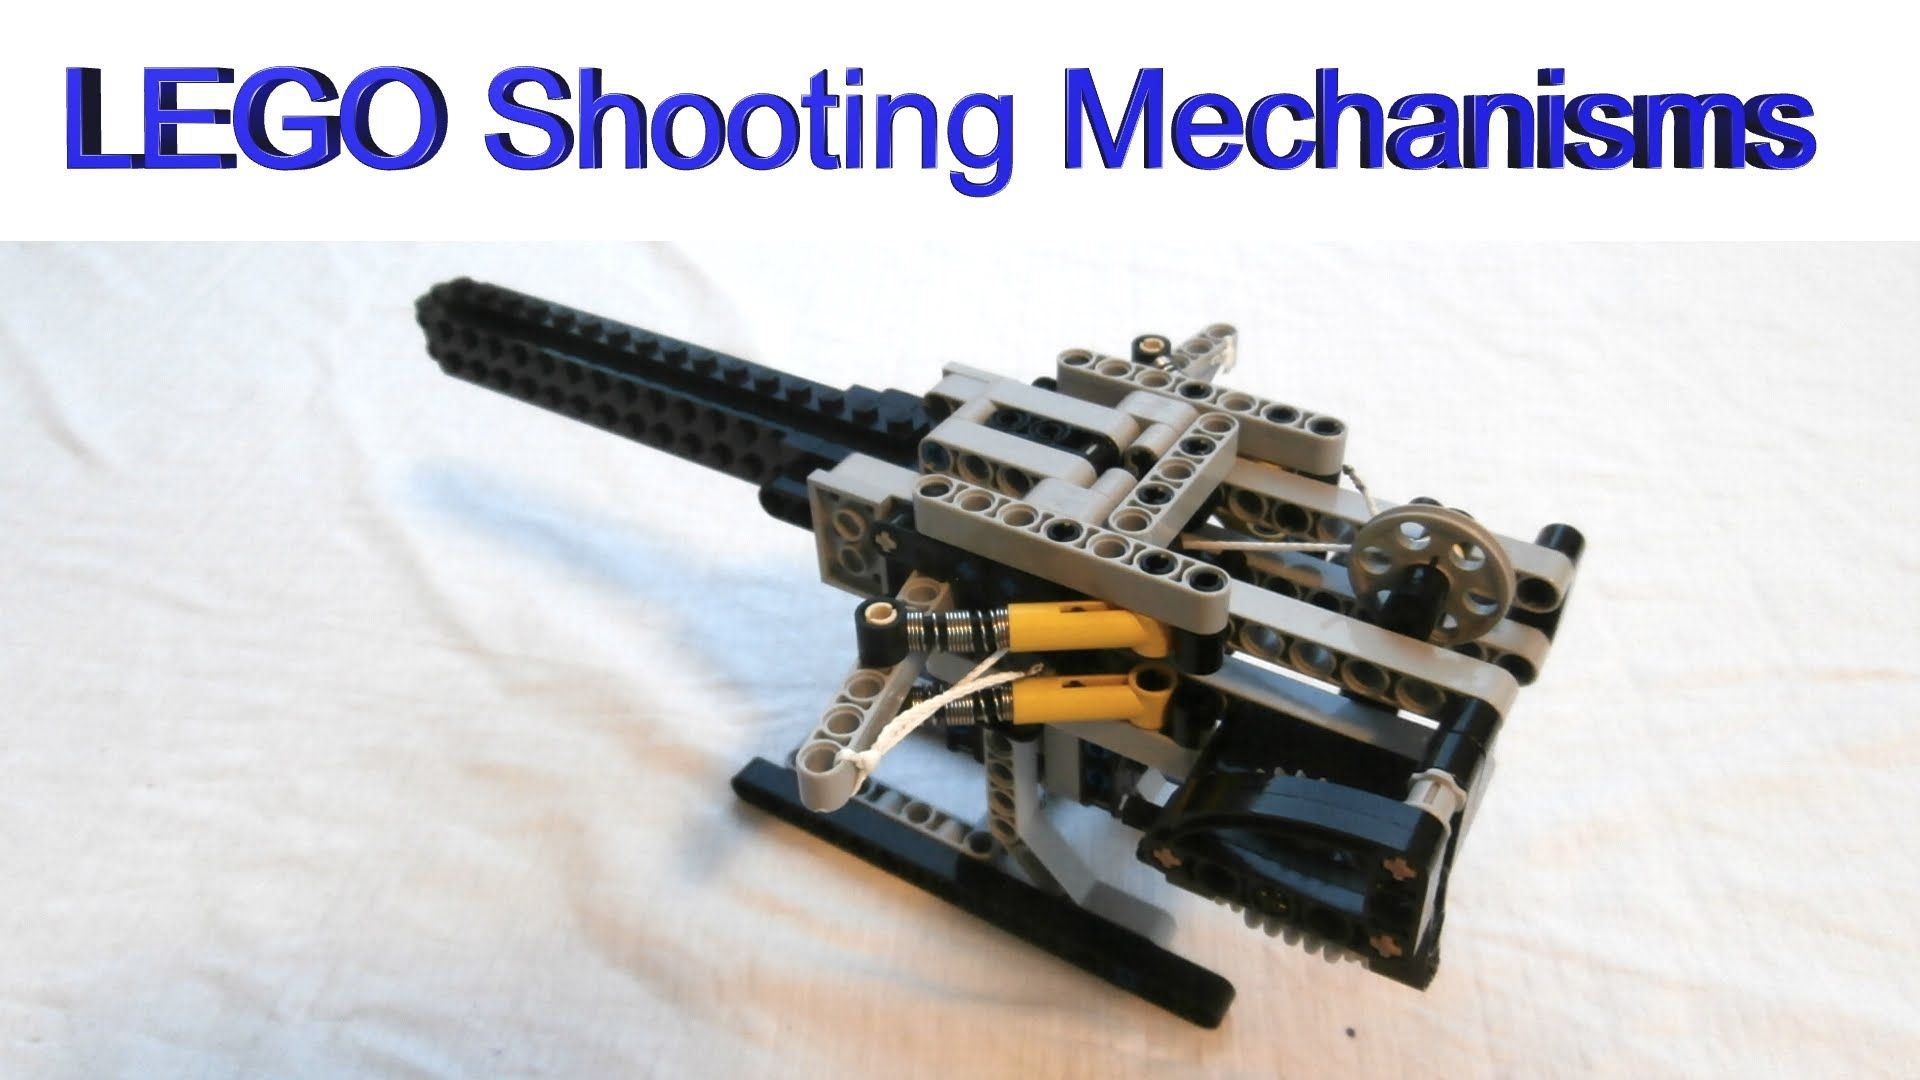 Cool Machines To Build How To Build Automatic Lego Shooting Mechanisms For Lego